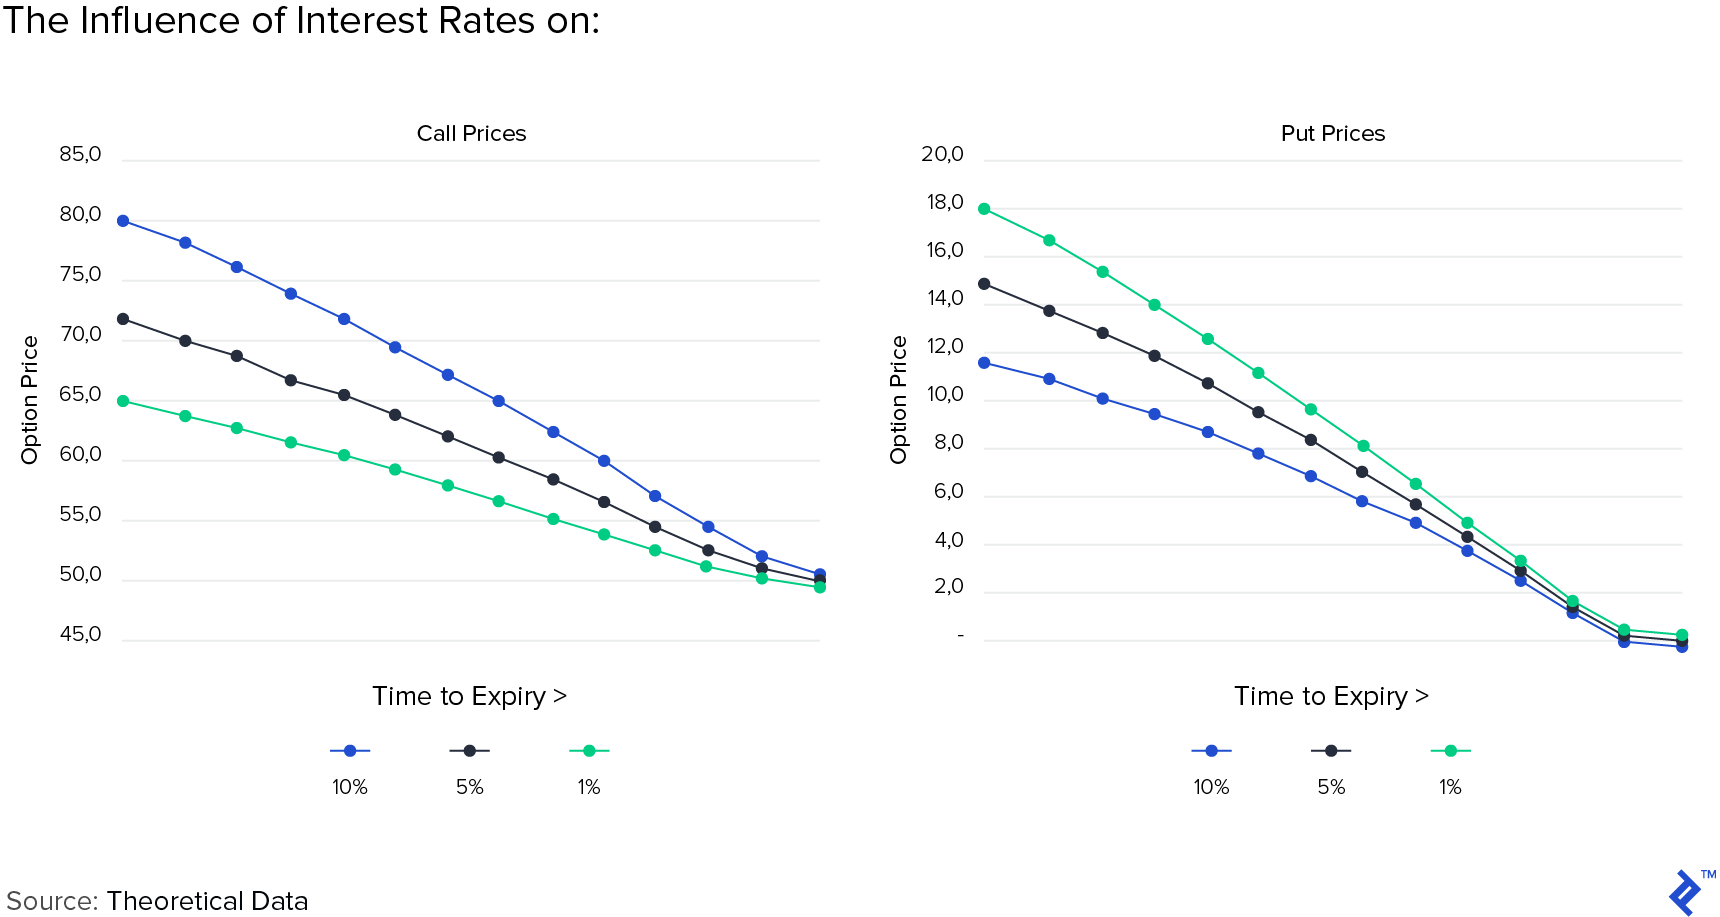 The influence of interest rates on call prices and put prices